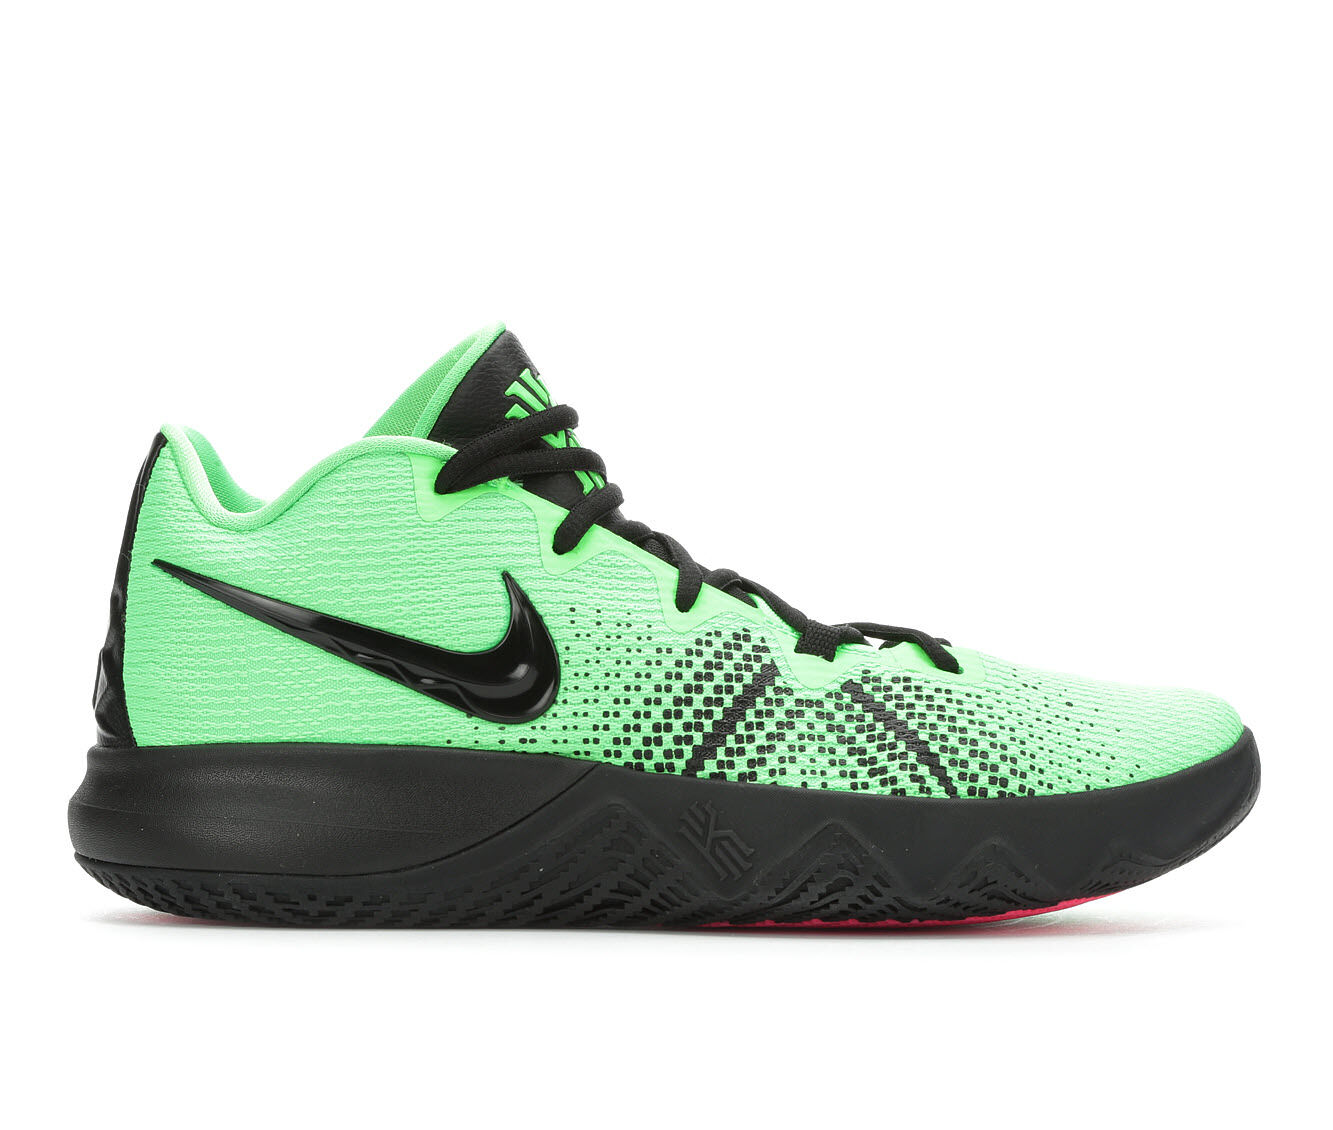 Special Deals Men's Nike Kyrie Flytrap Basketball Shoes Grn/blk/pink